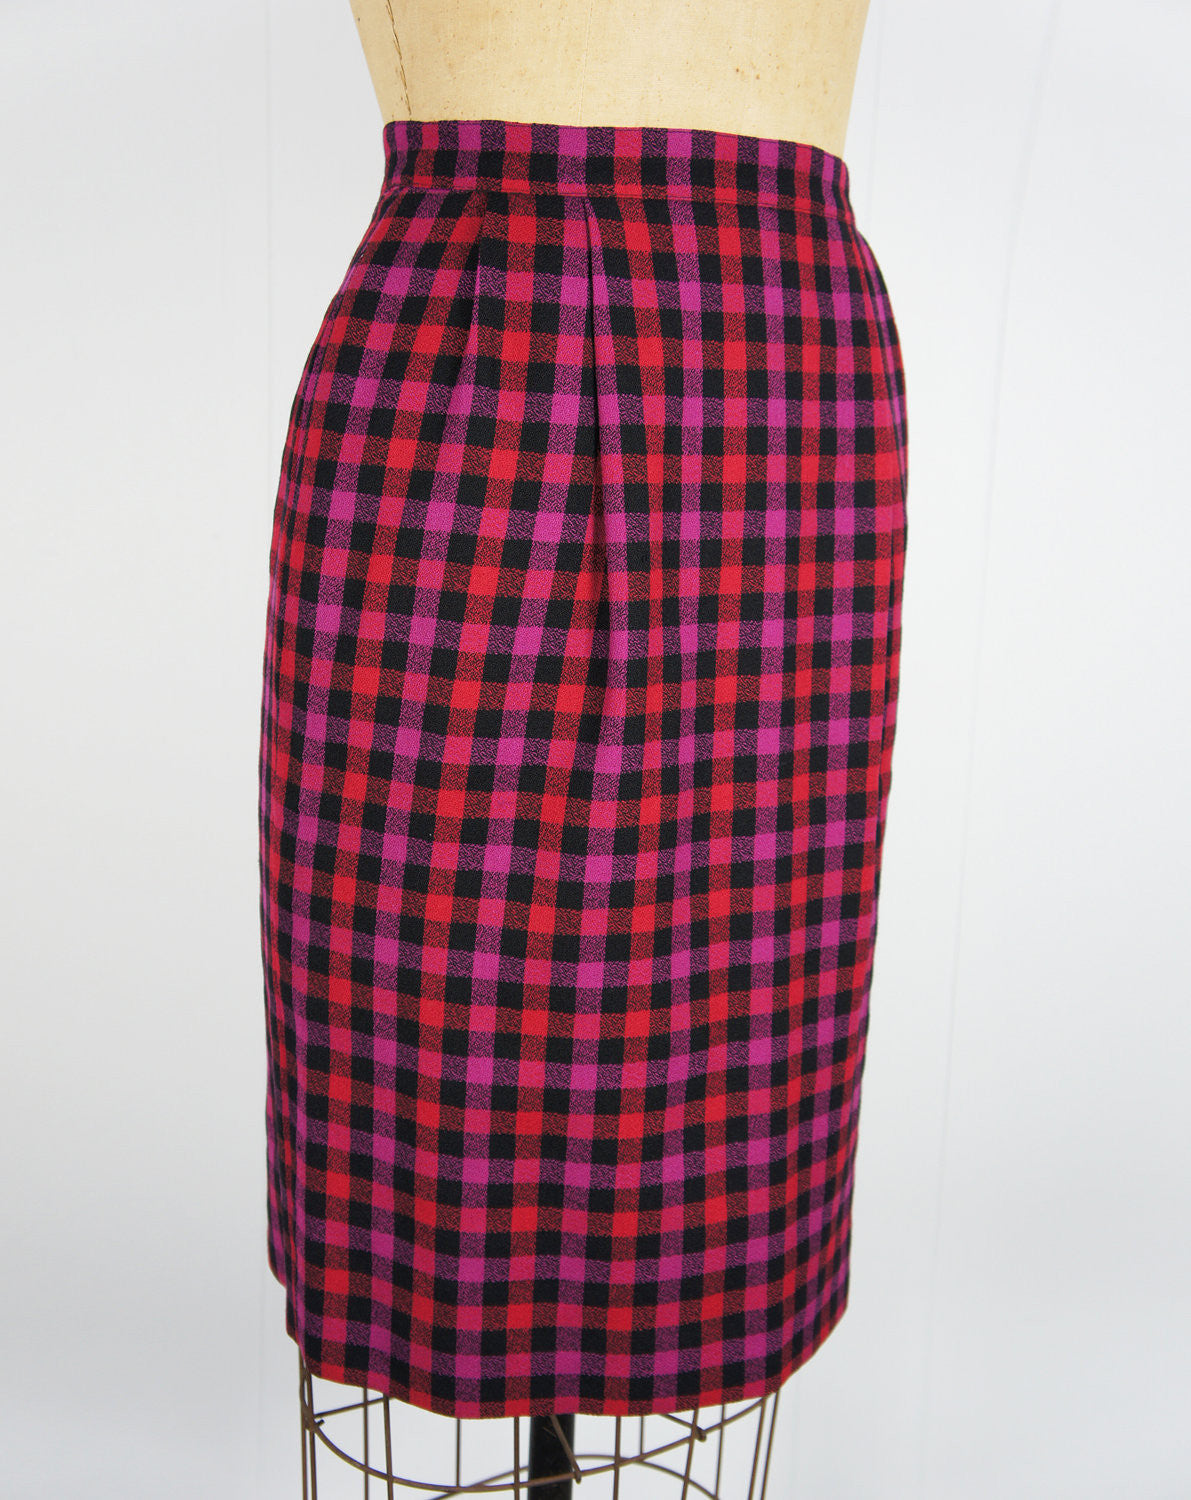 1980's Pink, Purple & Black Checkered Wool Pencil Skirt - Size S